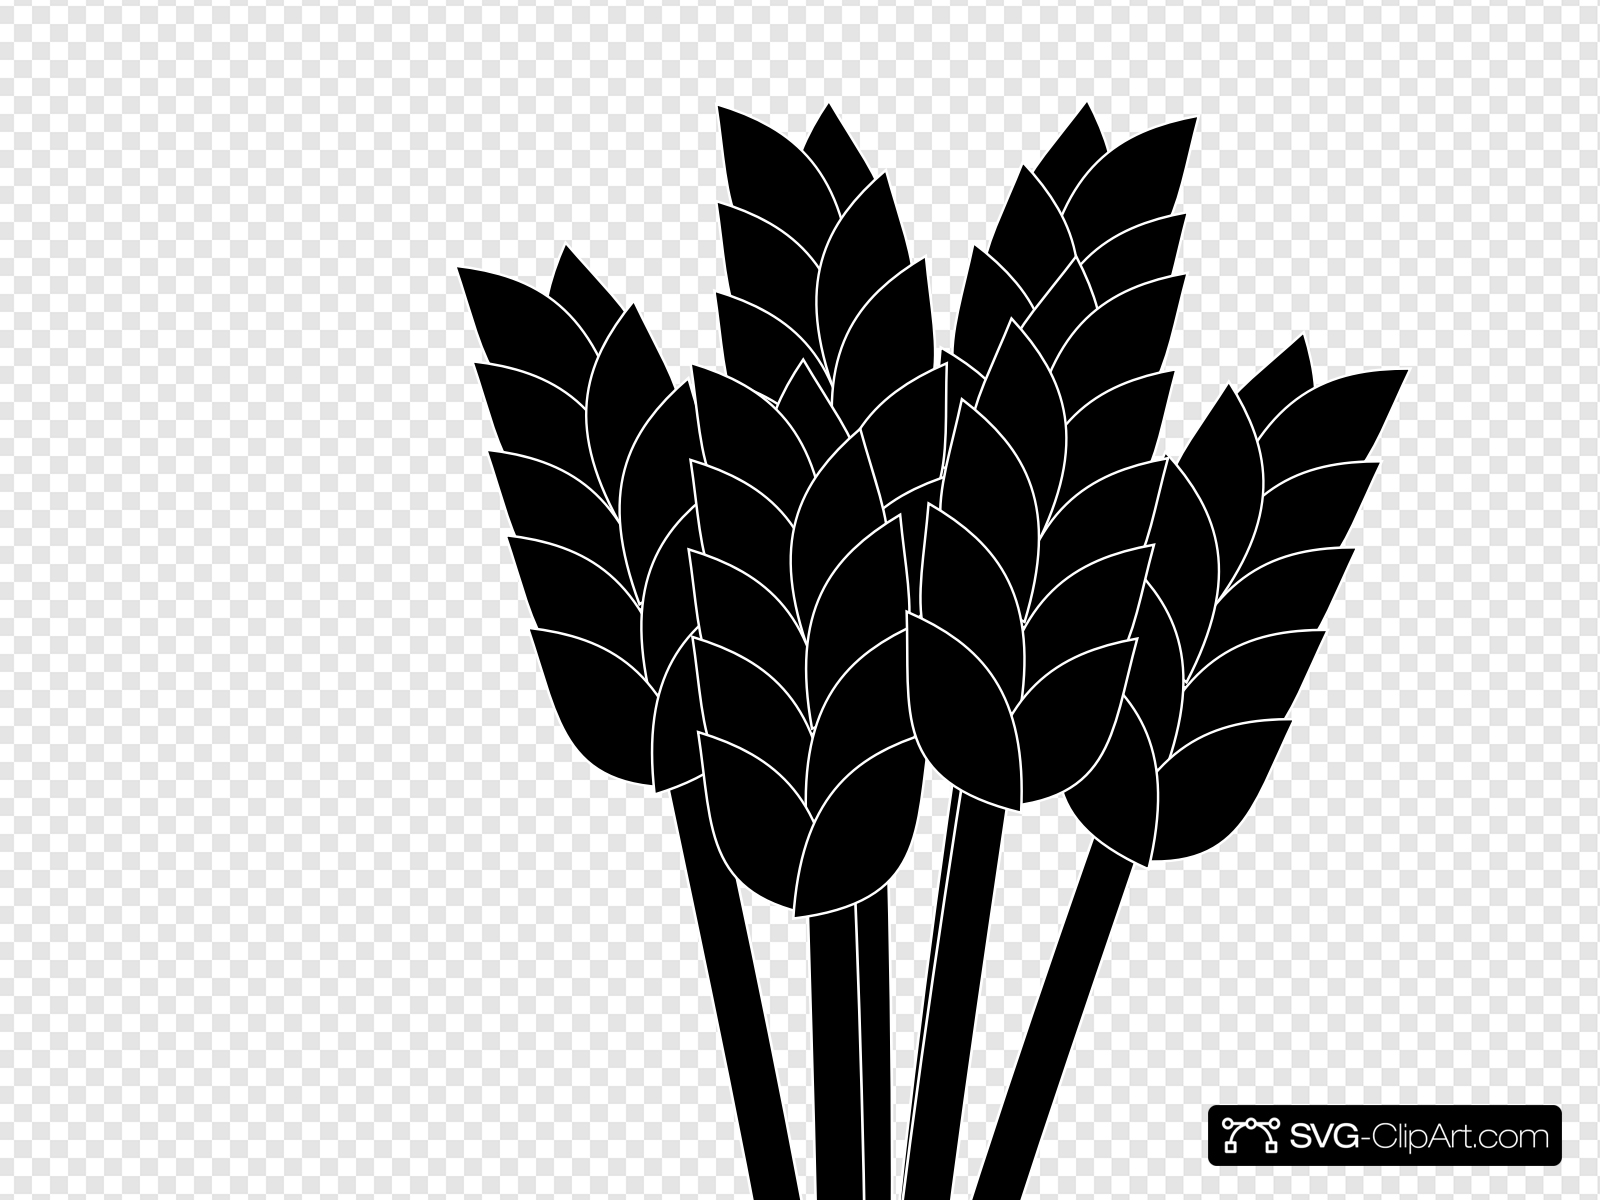 Wheat outline clipart jpg Wheat Clip art, Icon and SVG - SVG Clipart jpg